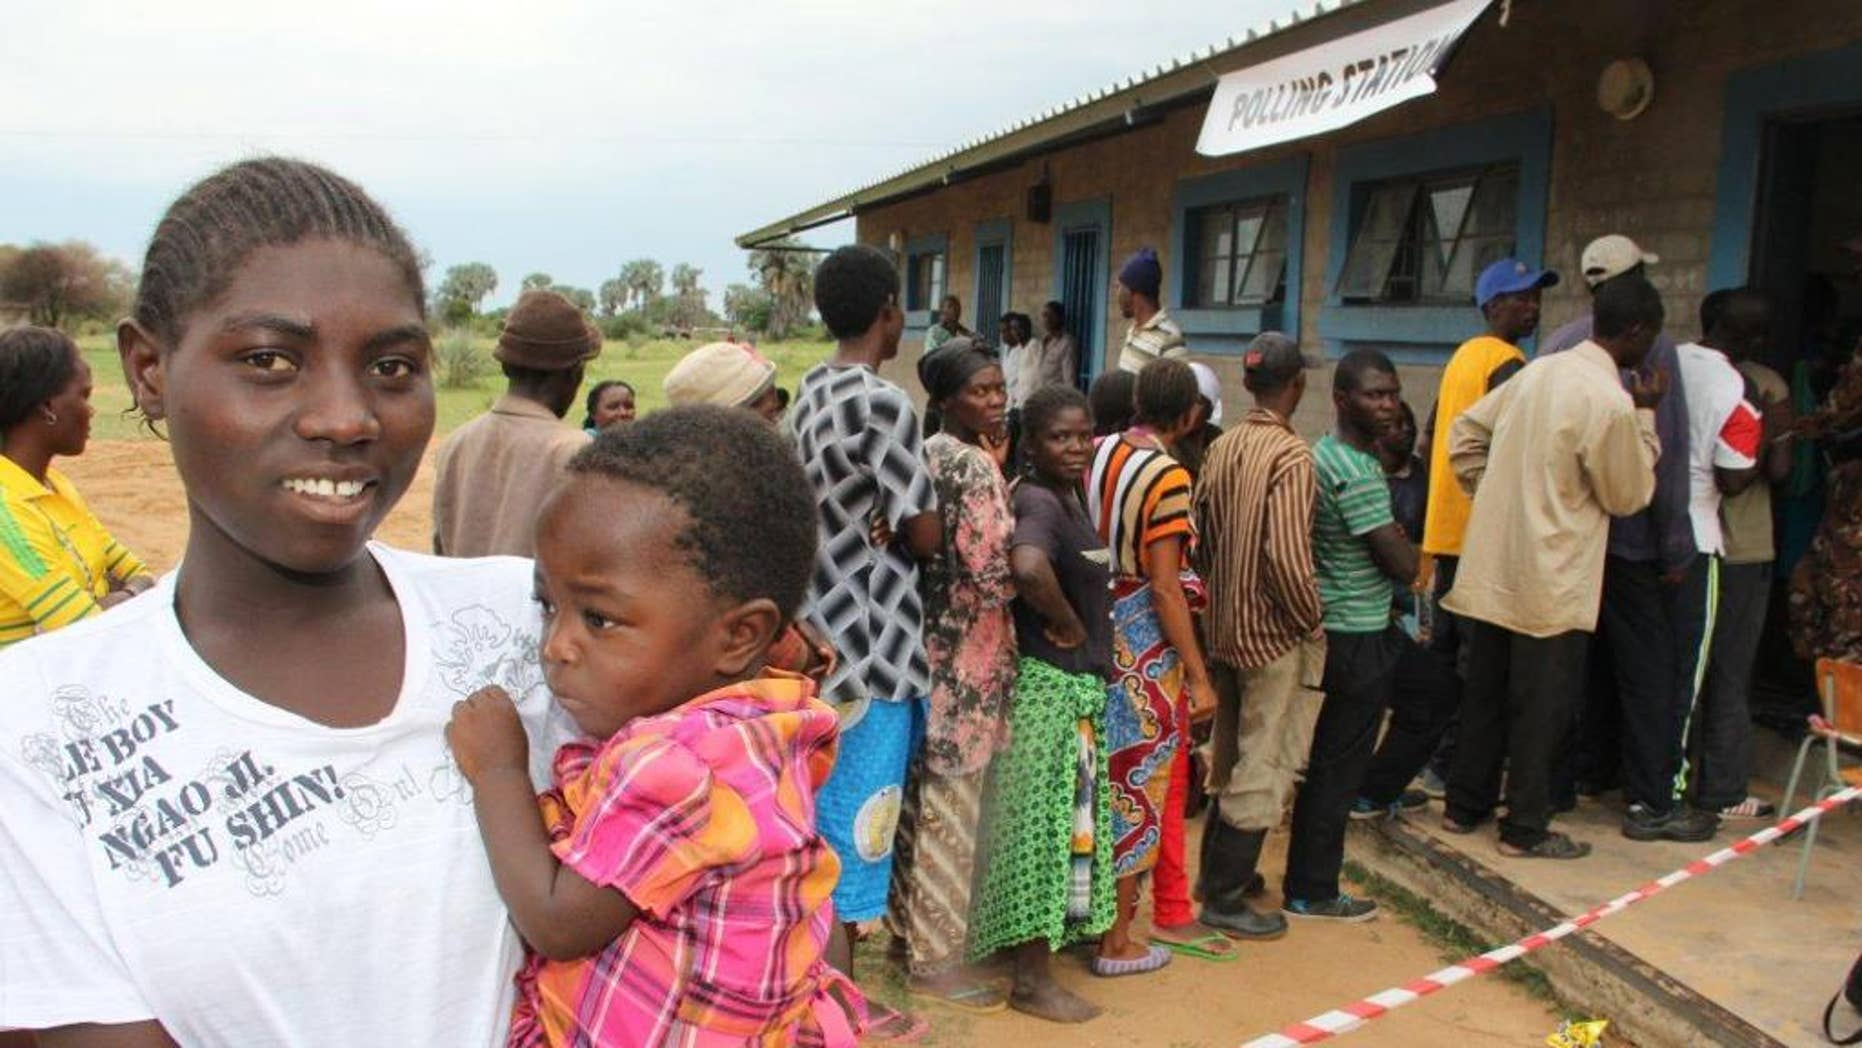 A voter carrying a child queues to cast her vote in the country's elections near Nkurenkuru, Namibia, Friday, Nov. 28, 2014. The southern African nation votes in parliamentary and presidential elections expected to deliver a comfortable win for the ruling party, which has been in power since independence in 1990. (AP Photo/Dirk Heinrich)